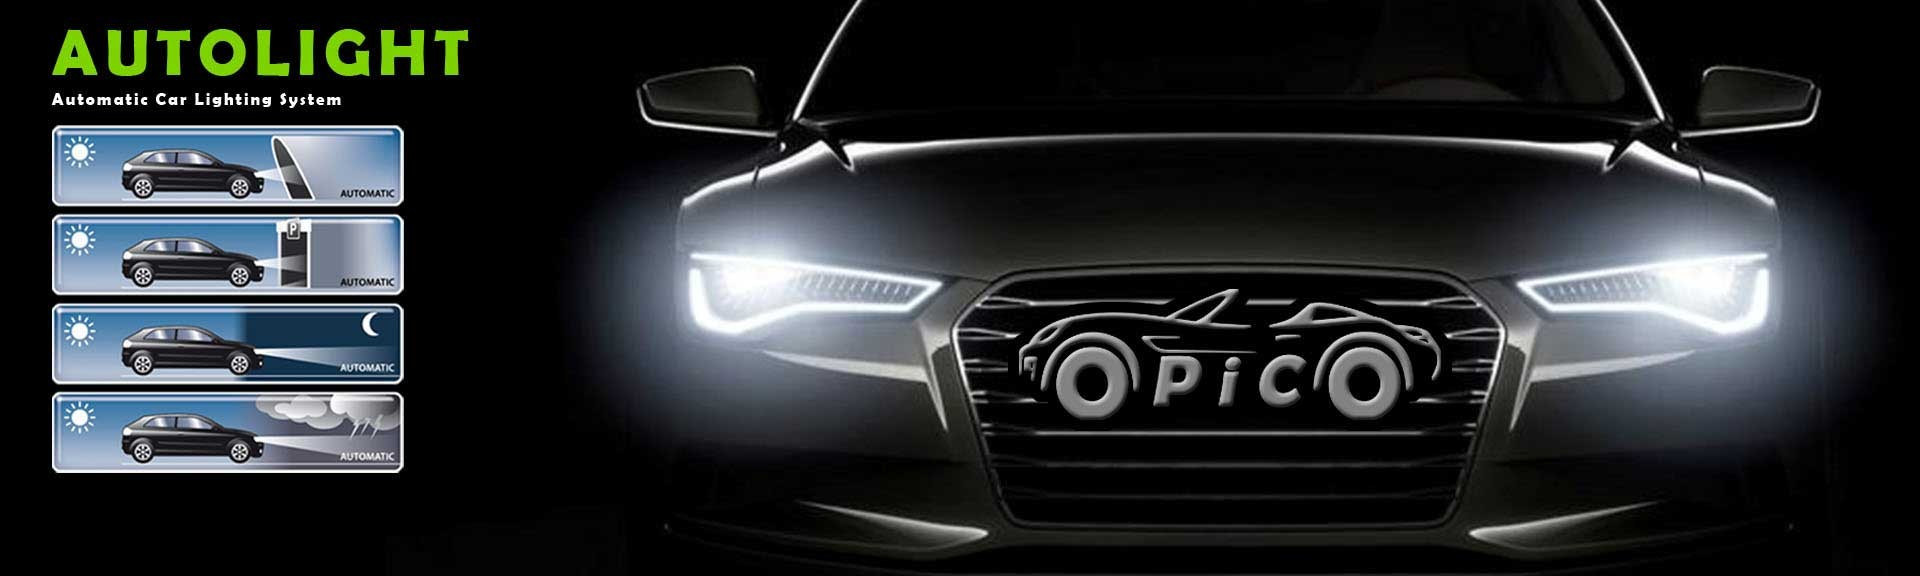 Opico Different Approach in Automotive Industry